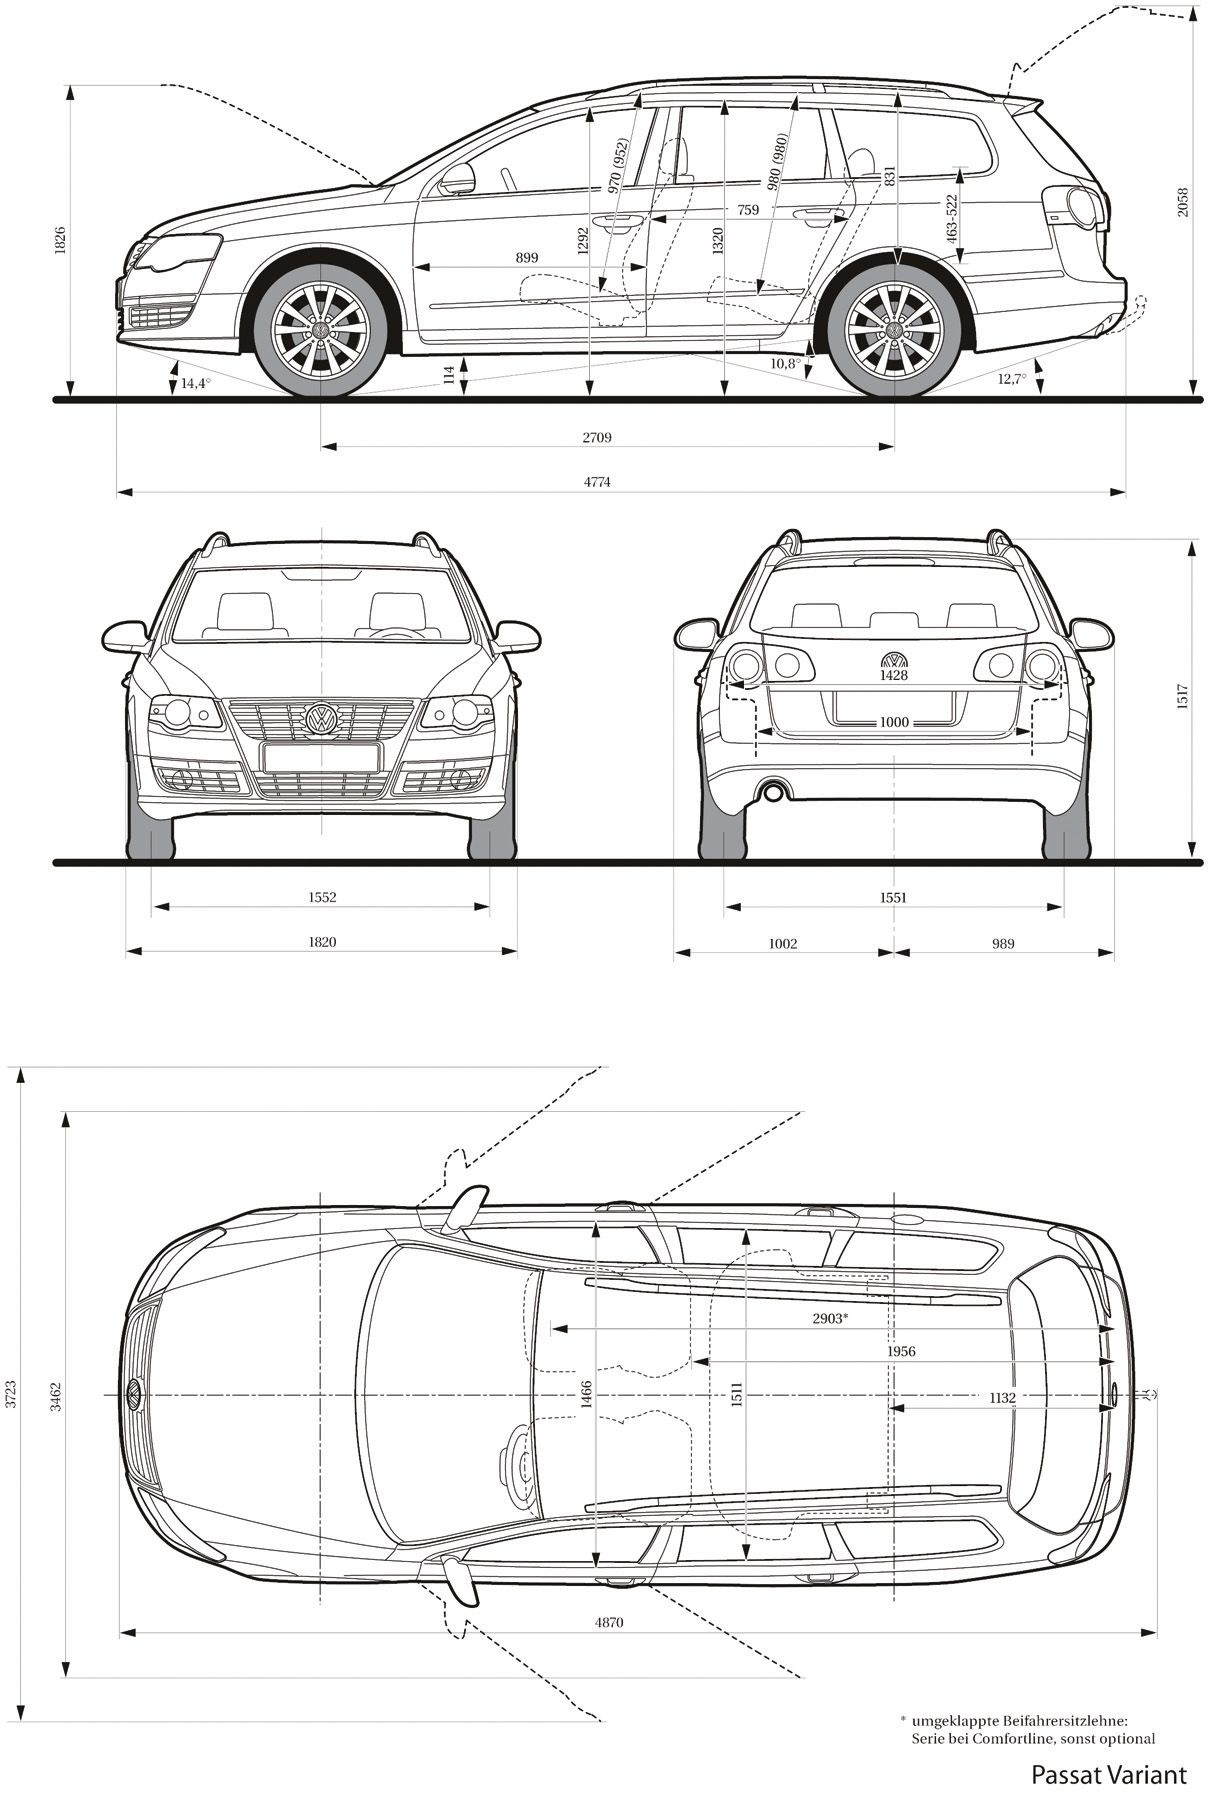 7b1b5802a45bb233da833a0857778f6a volkswagen passat variant 2005 blueprints pinterest VW Jetta 2.0 Engine Diagram at creativeand.co